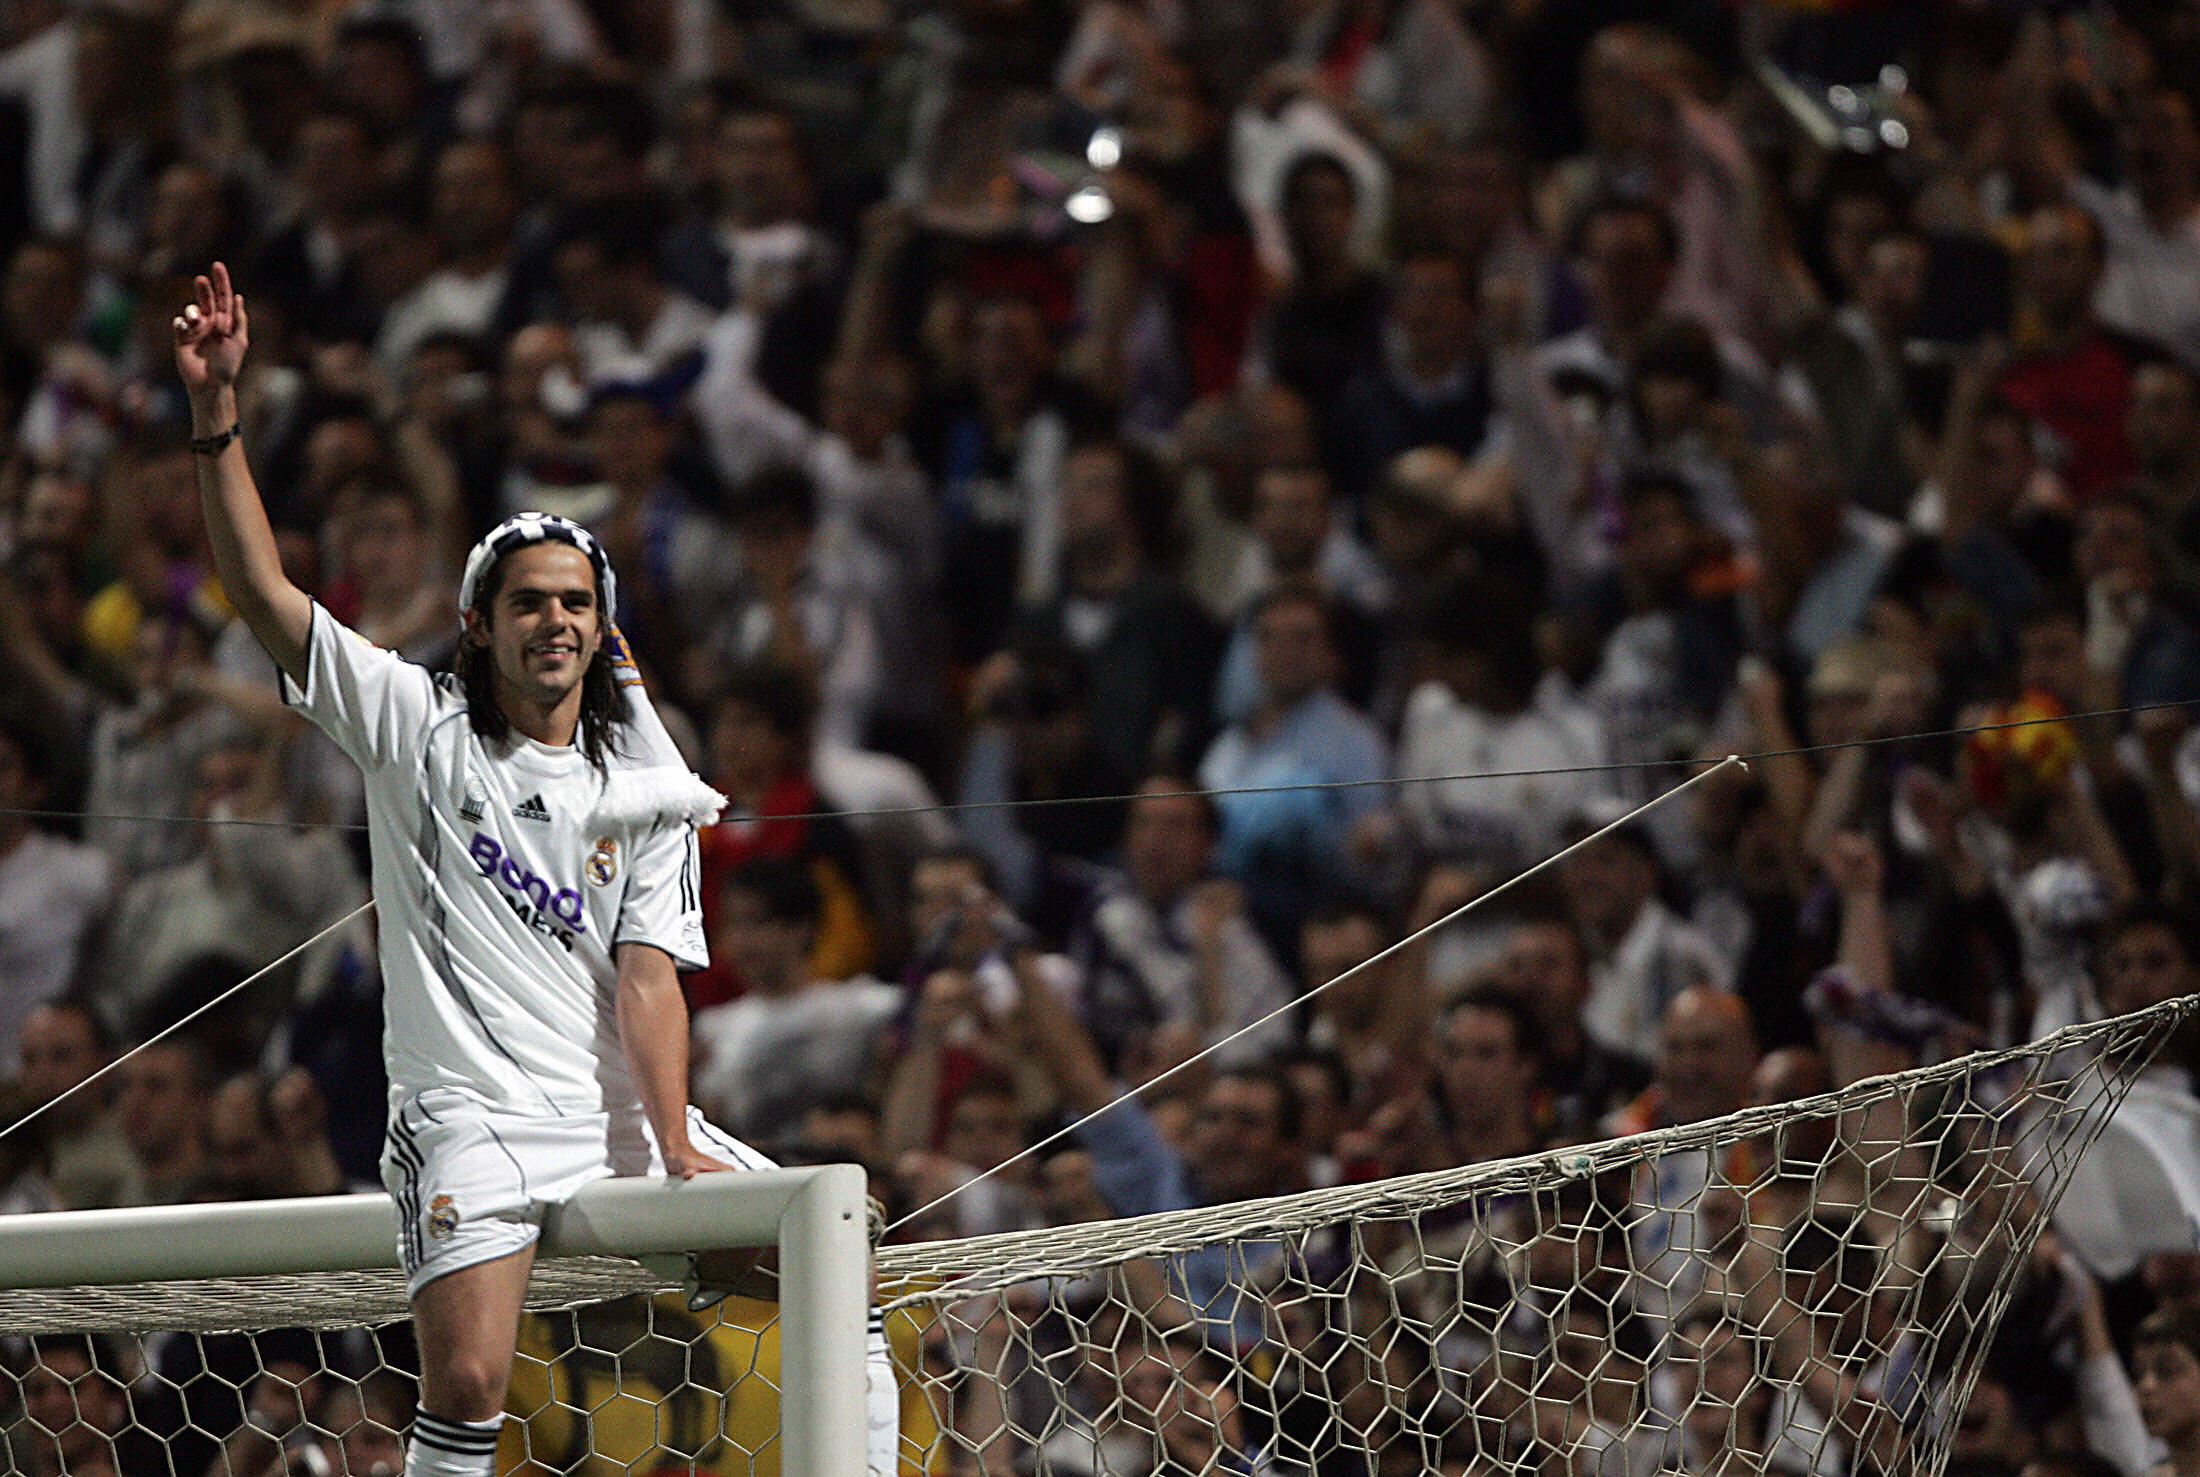 Madrid, SPAIN: Real Madrid's Fernando Gago celebrates after Real won the Spanish league title by beating Mallorca in the final Spanish league football match of the season, 17 June 2007 at the Santiago Bernabeu stadium in Madrid. Real won 3-1 to win their 30th league title. AFP PHOTO/BRU GARCIA (Photo credit should read BRU GARCIA/AFP/Getty Images)